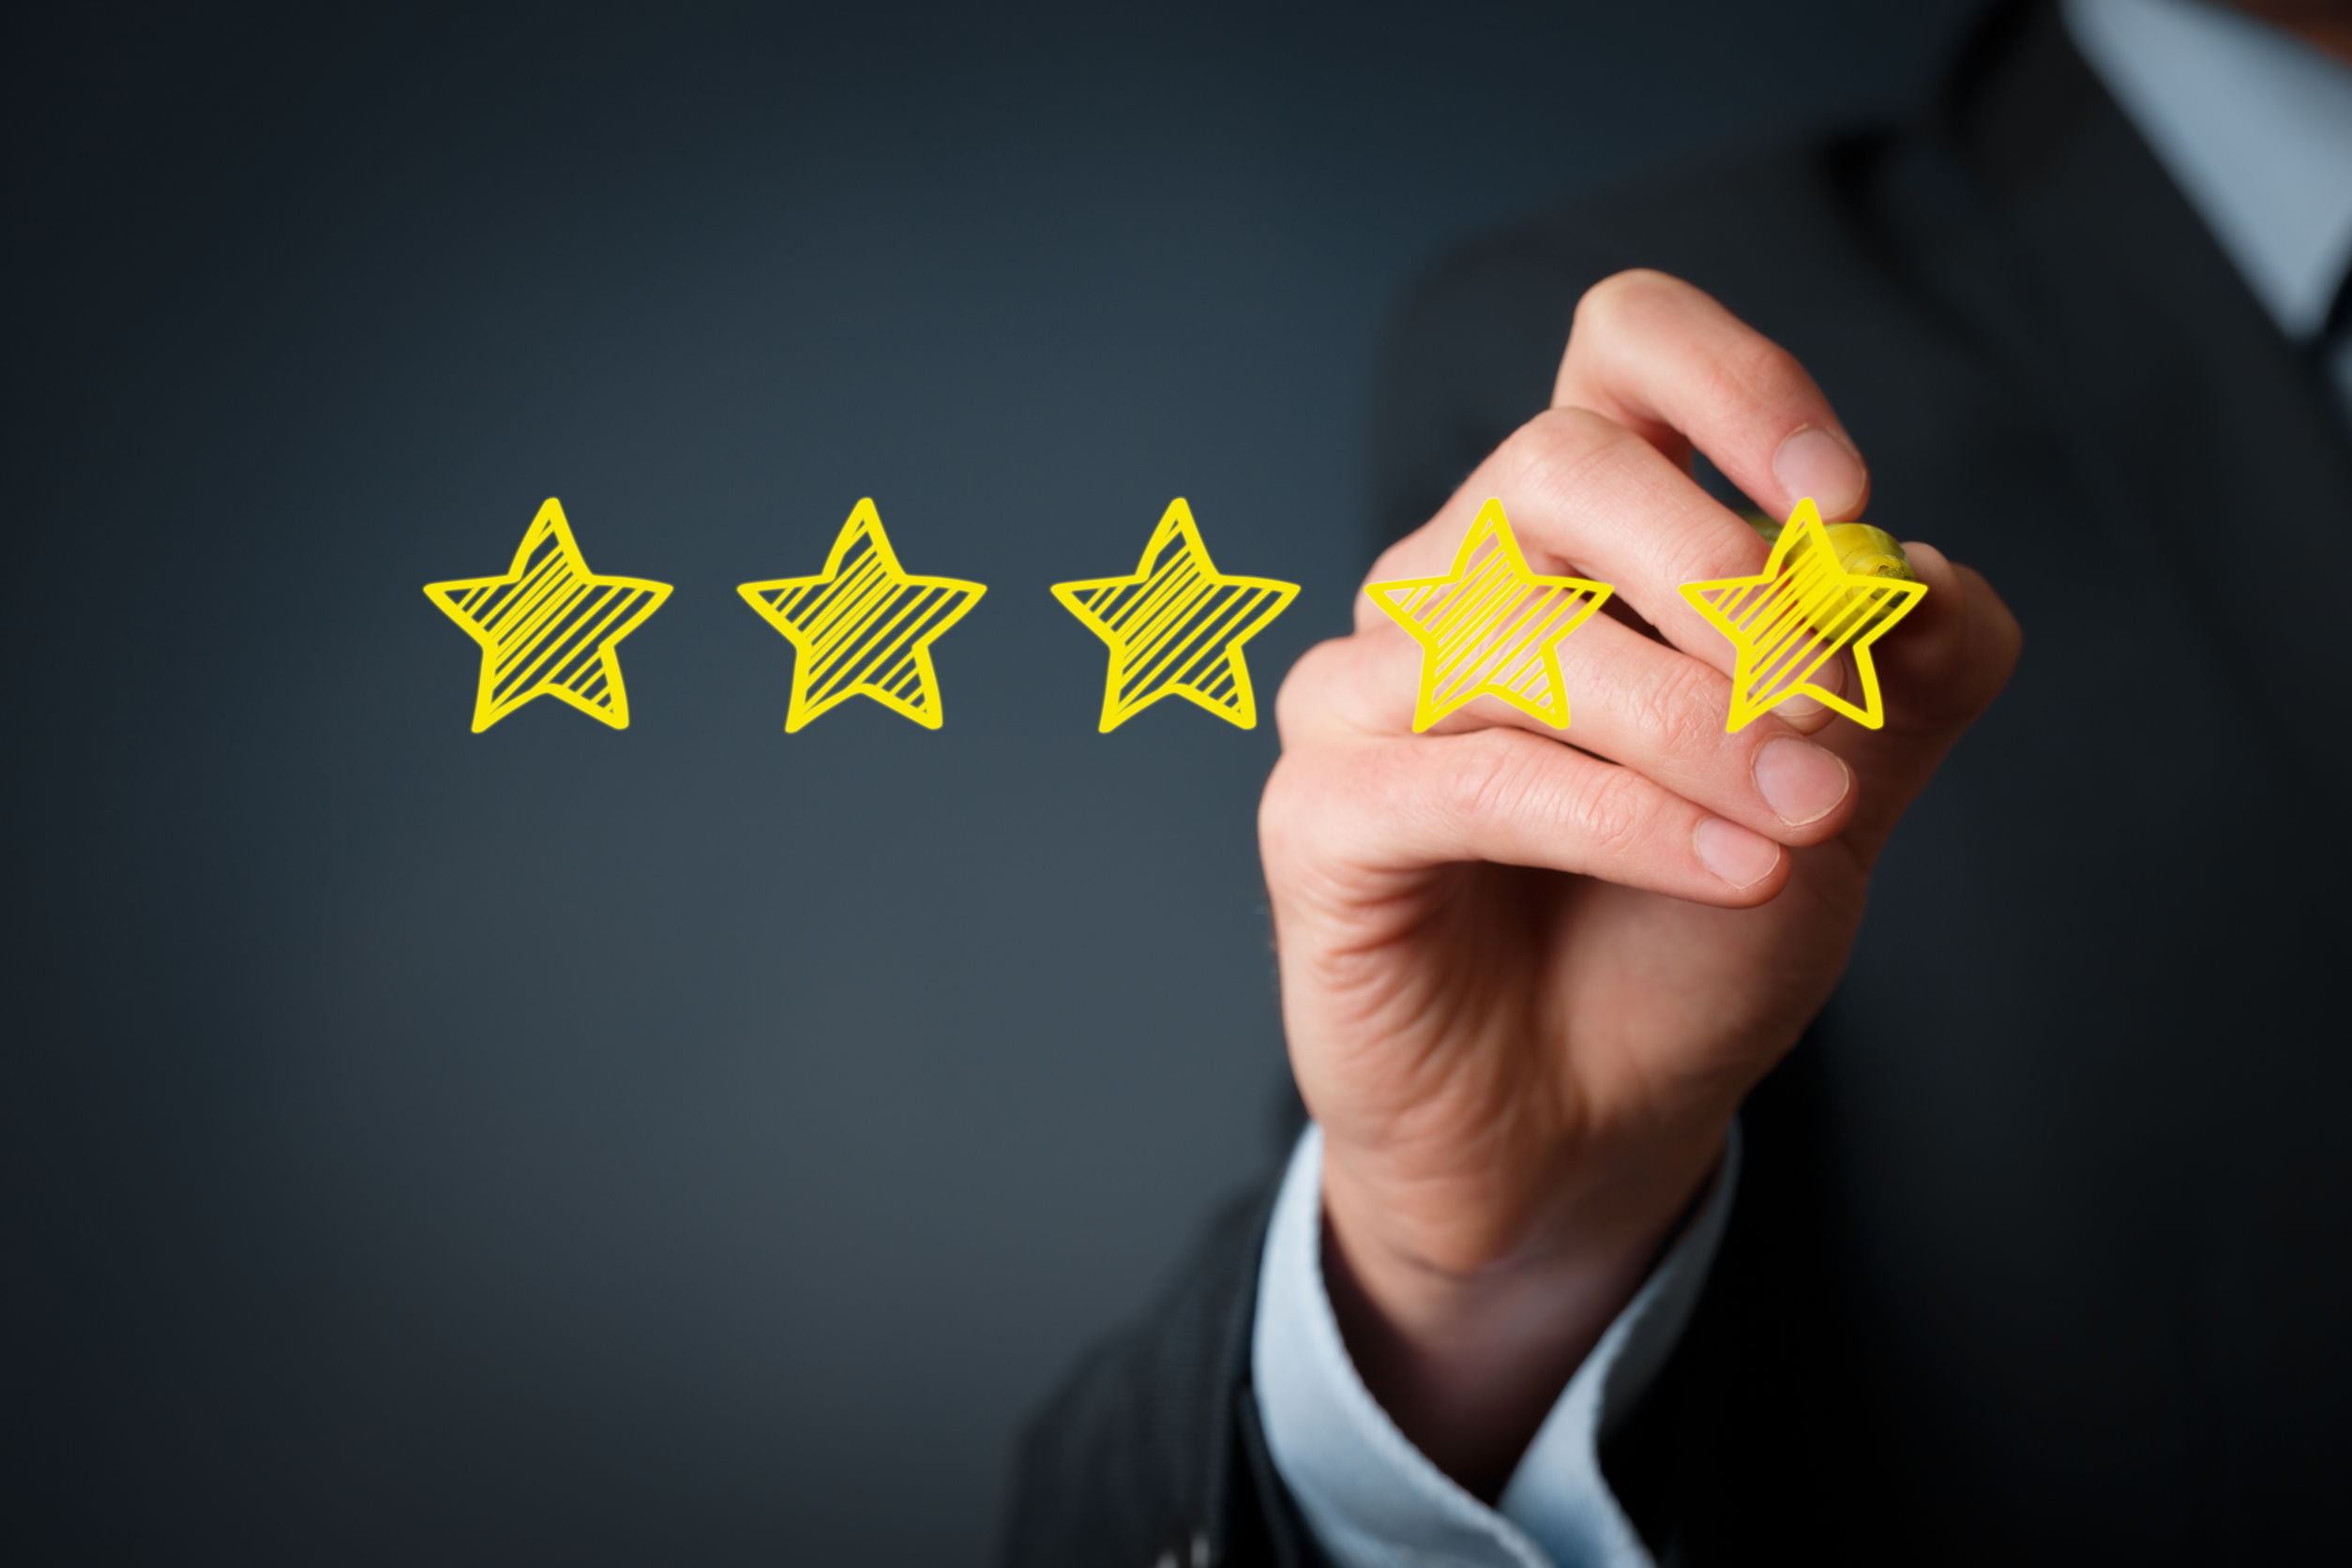 Are You Good at Your Job - Why Receiving Feedback is Important